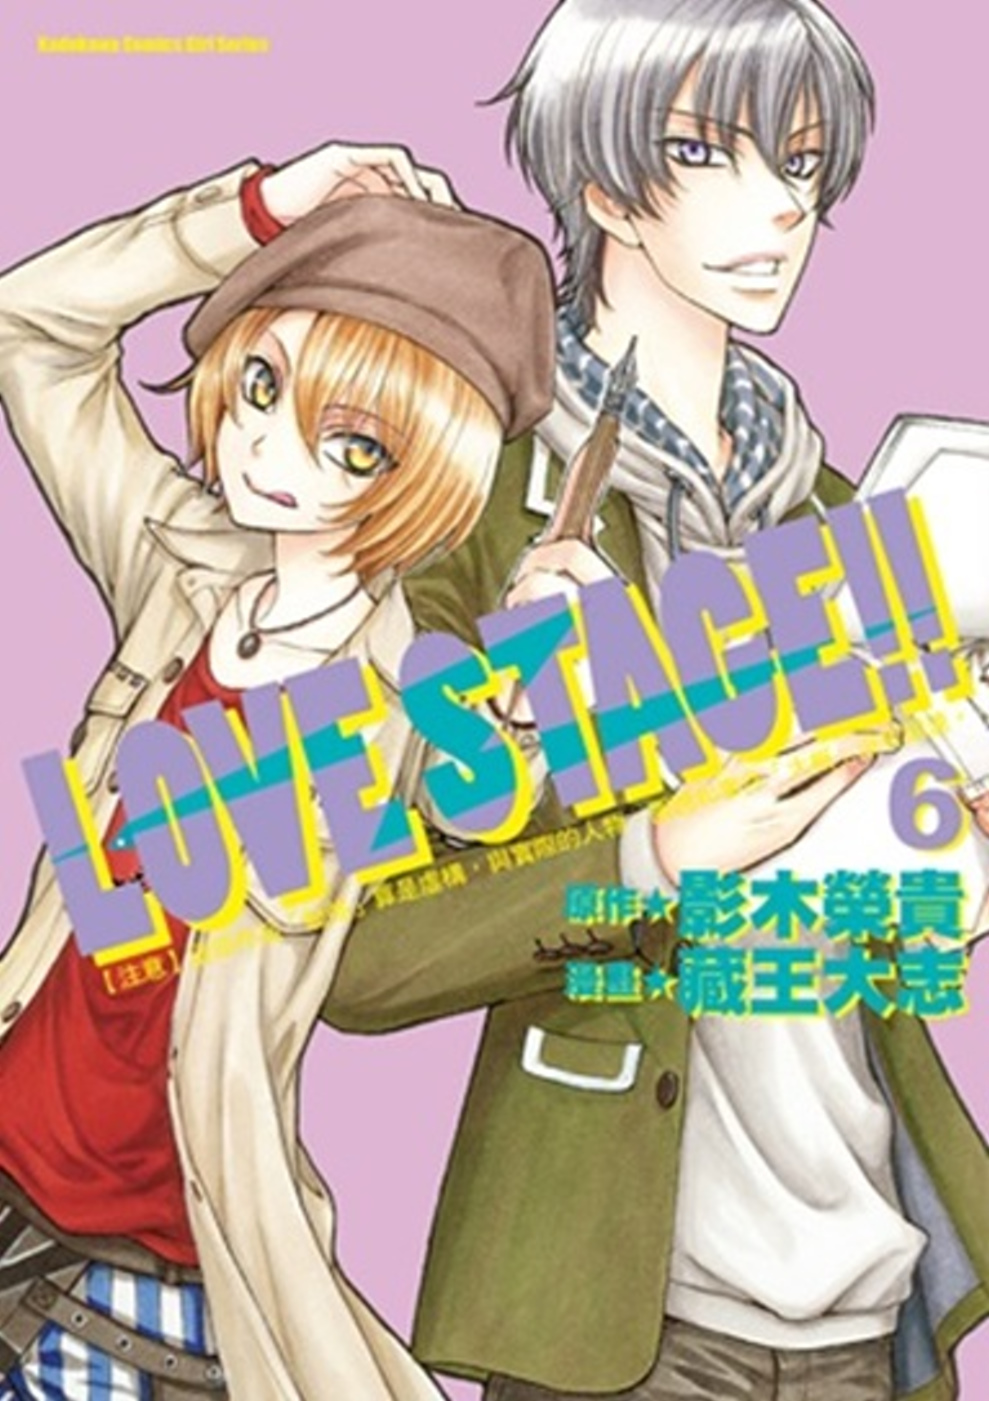 LOVE STAGE^!^! ^(6^)